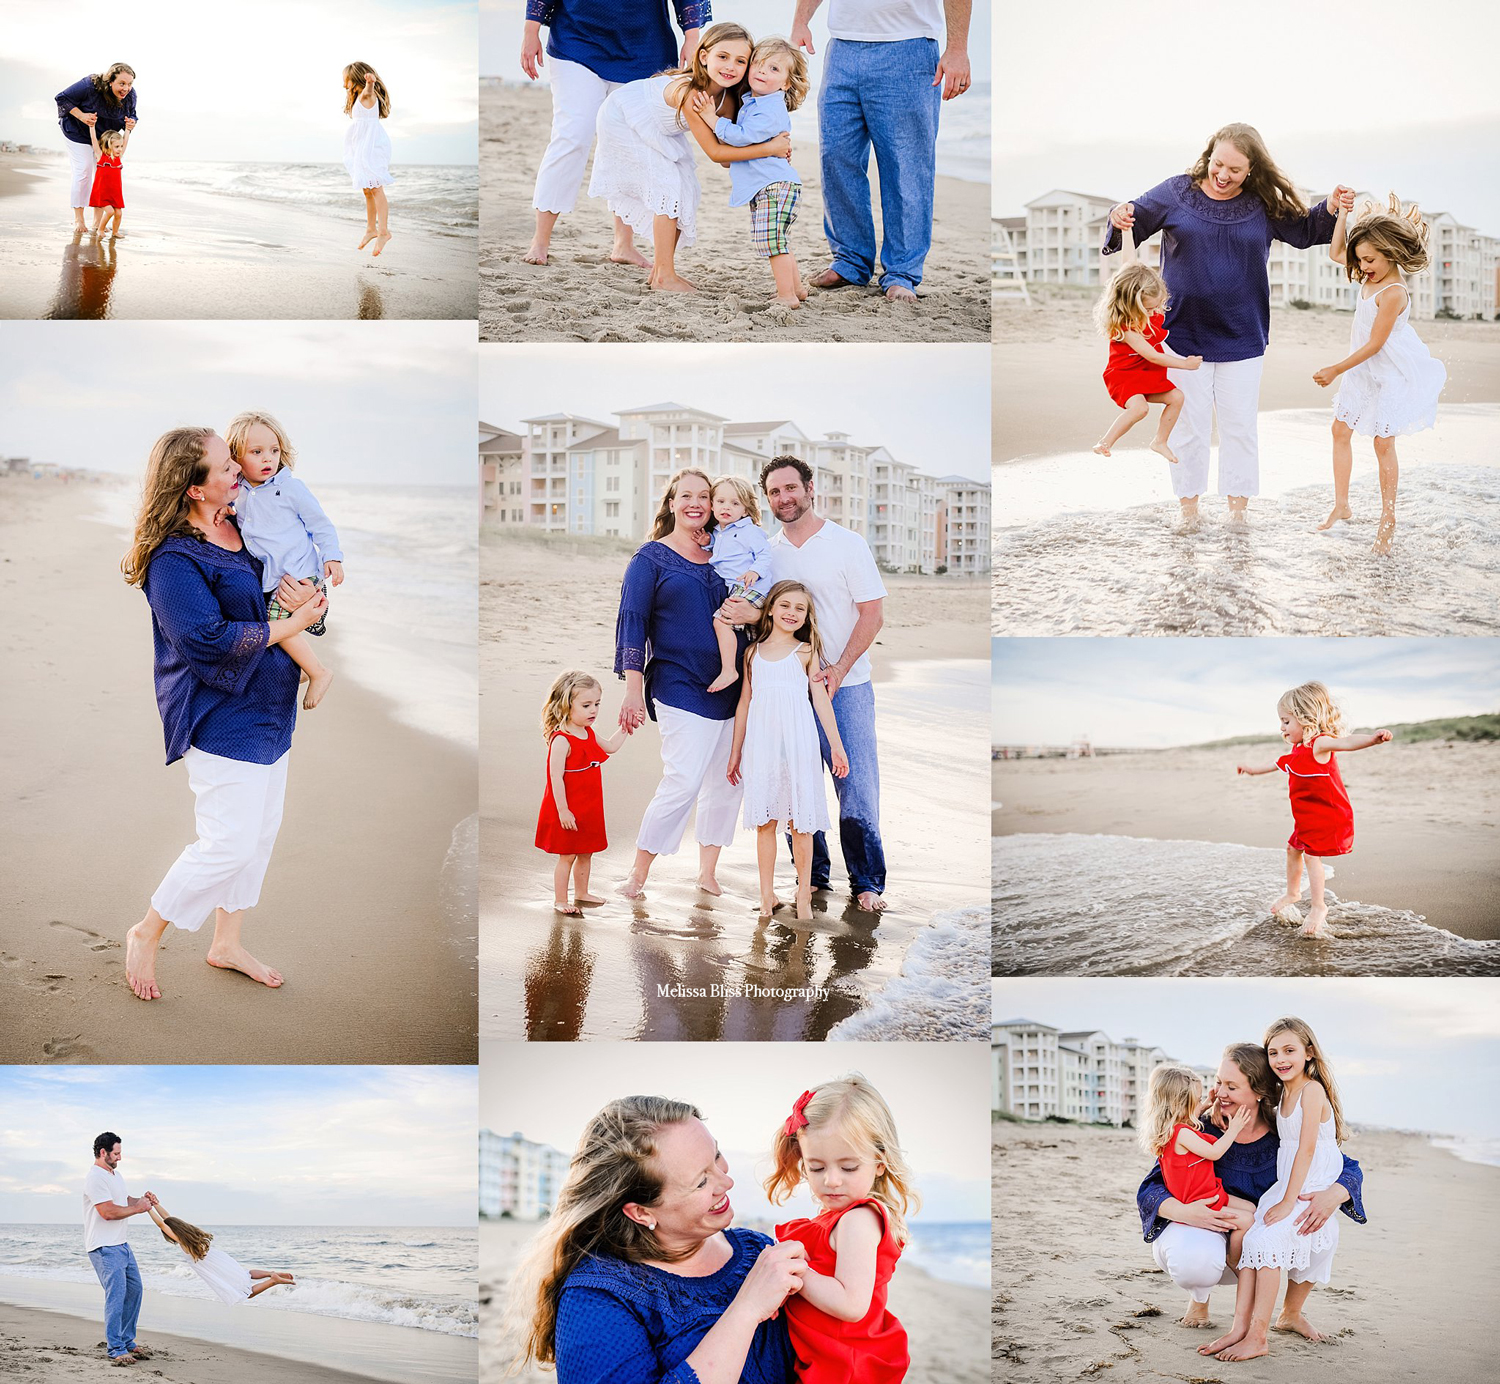 sandbridge-beach-family-photographer-melissa-bliss-photography-virginia-beach-best-lifestyles-photos.jpg